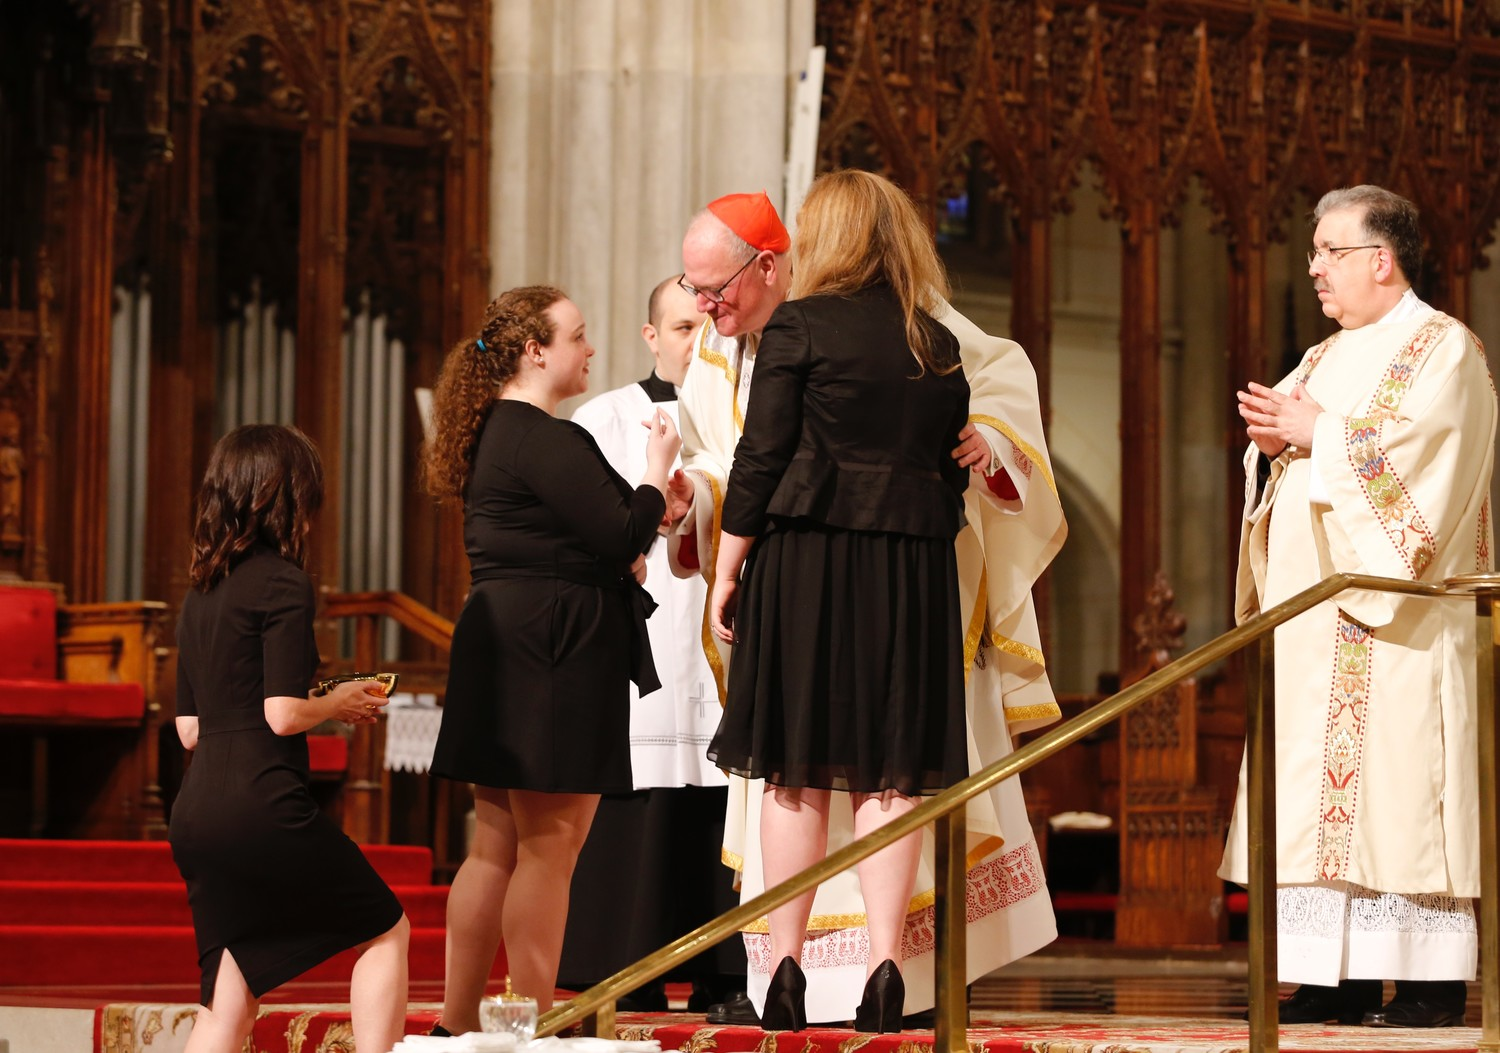 Cardinal Dolan receives the offertory gifts from gift bearers Myra Bowyer, Caitlin Whitehead and Aislinn Whitehead at the Memorial Mass in St. Patrick's Cathedral April 25.